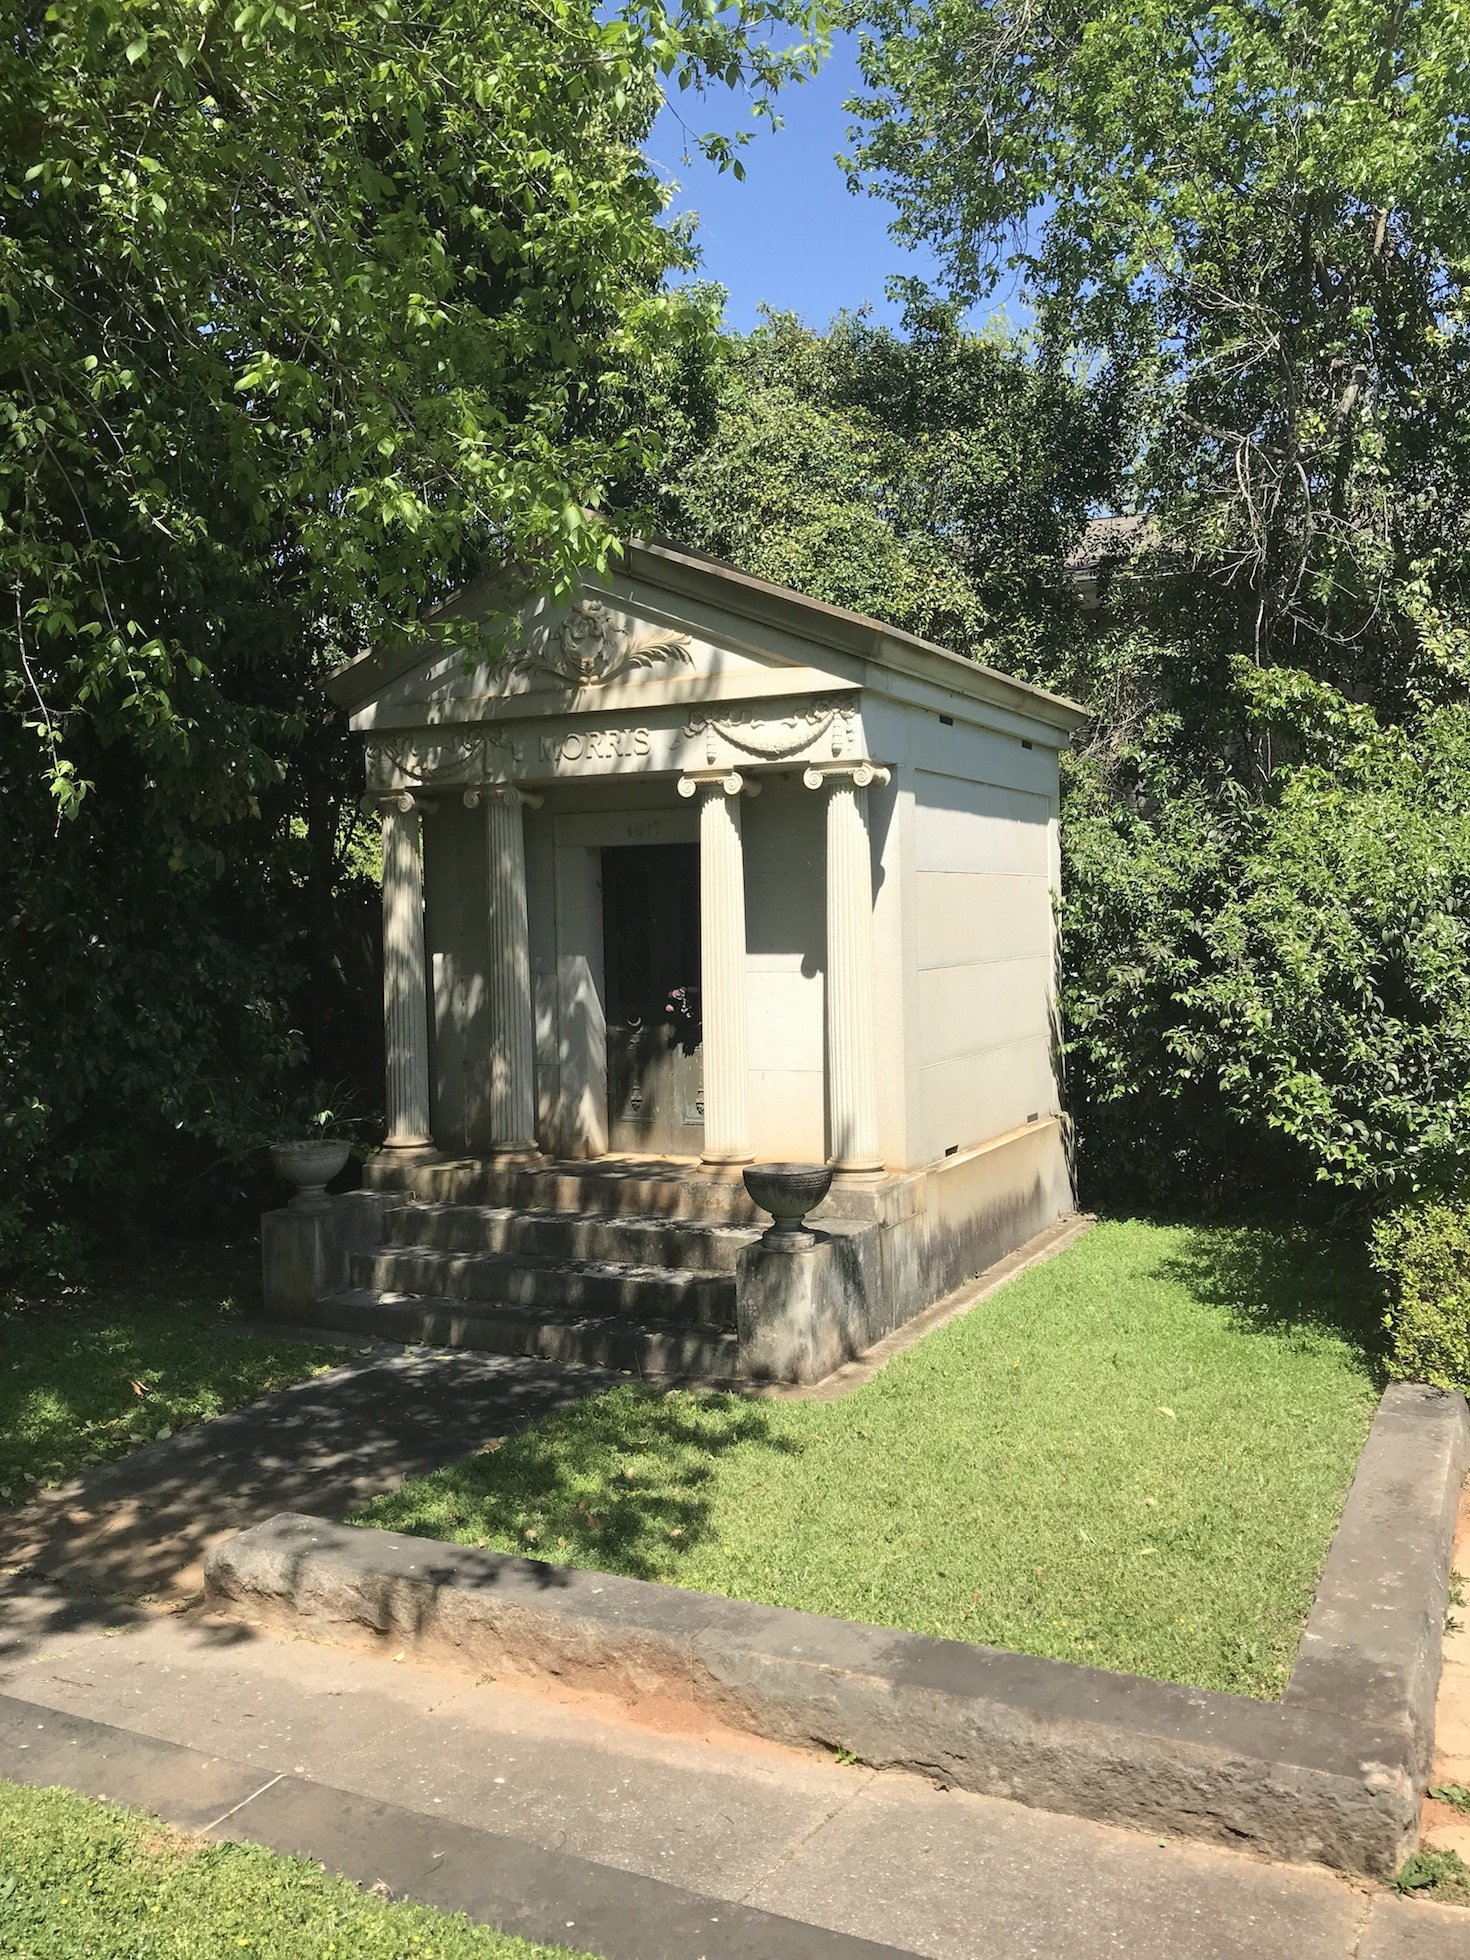 Mausoleum in Jewish section of cemetery